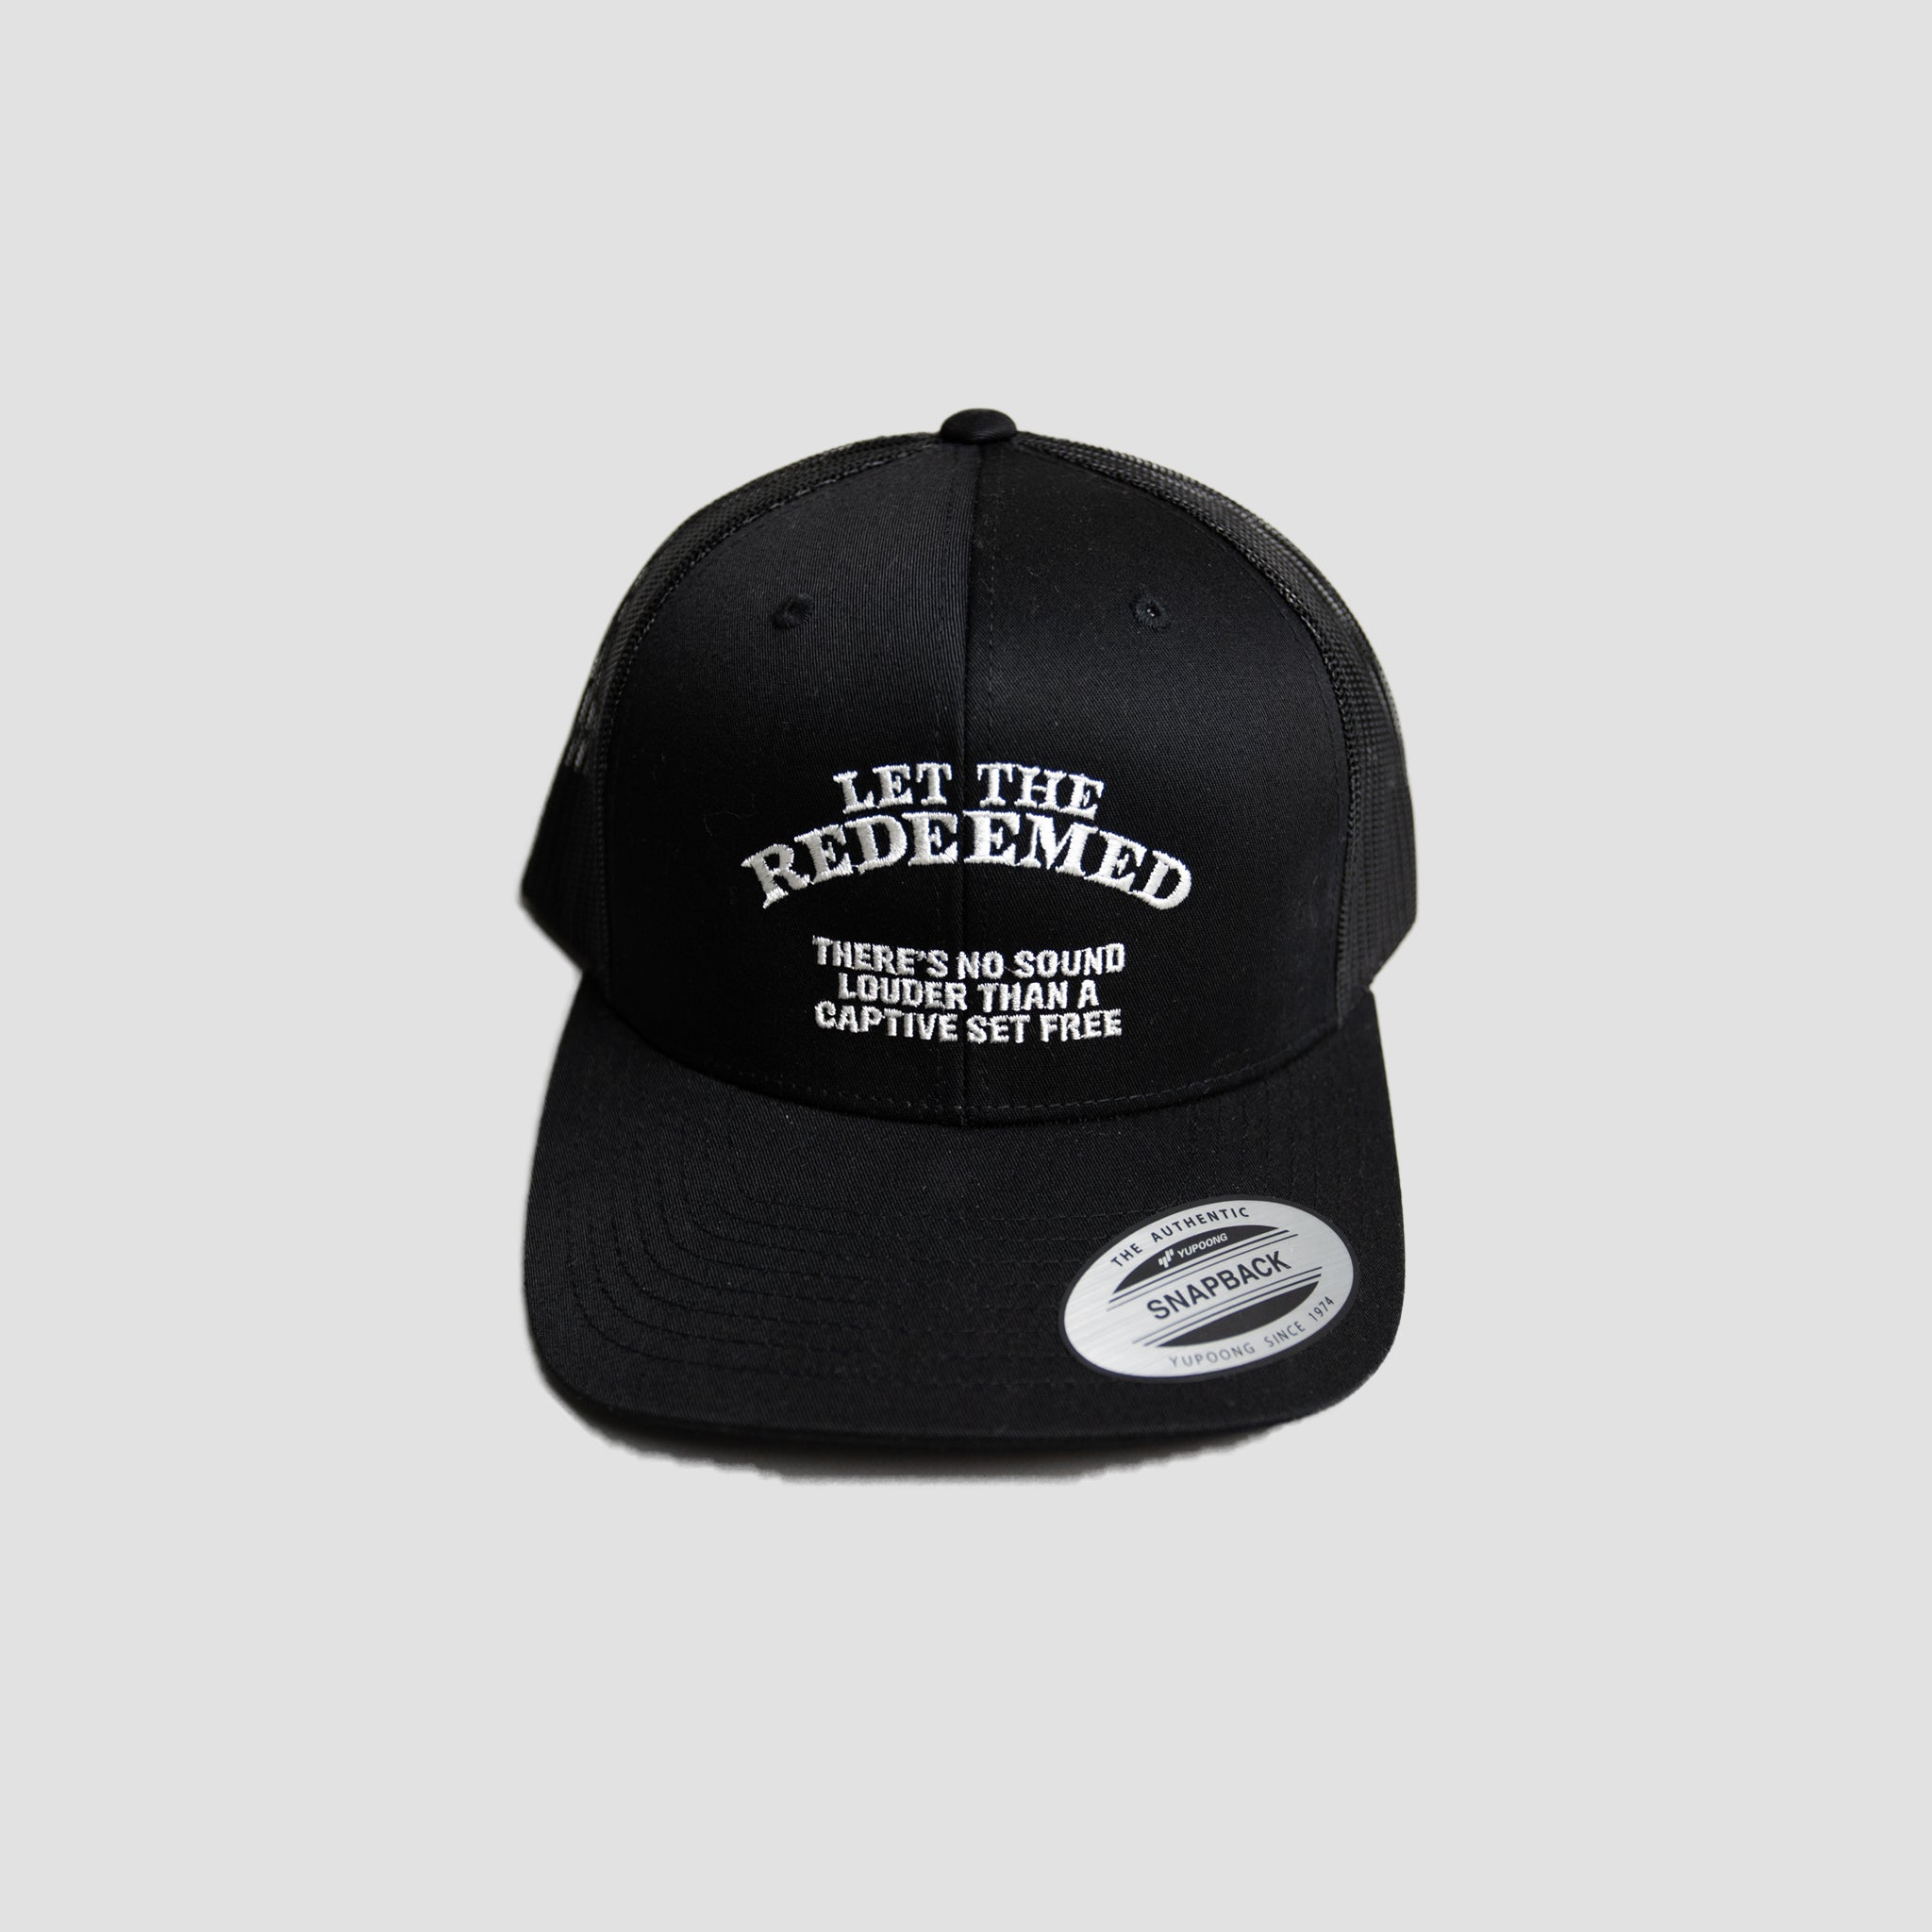 Let the Redeemed Trucker Hat